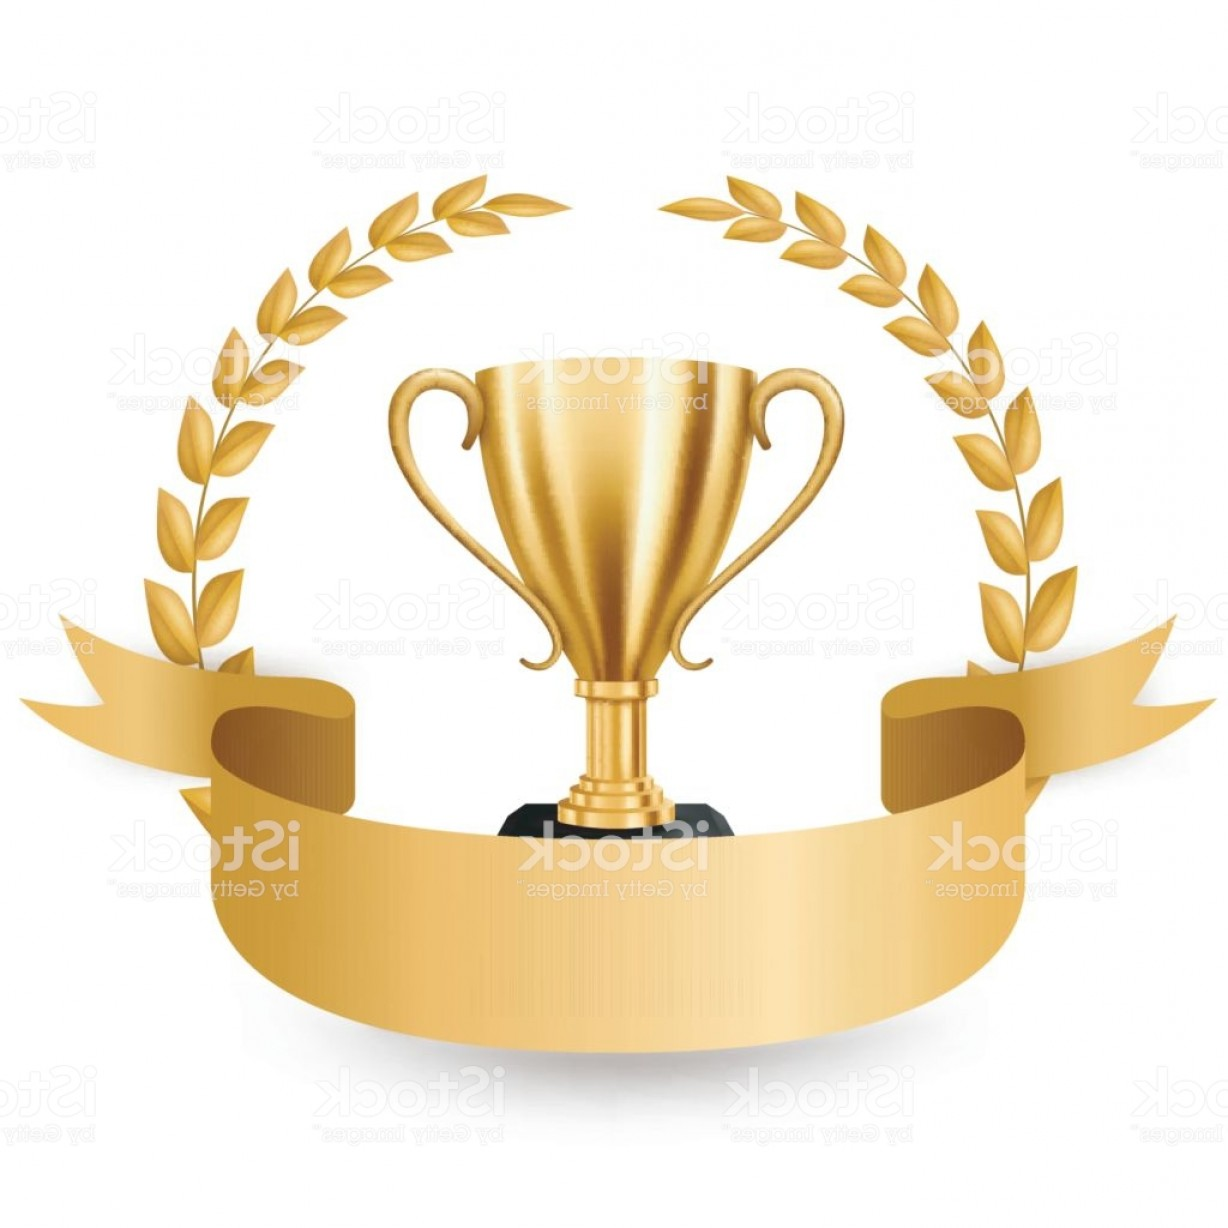 Gold Trophy Vector: Realistic Golden Trophy With Gold Laurel Wreath And Ribbon Vector Illustration Gm